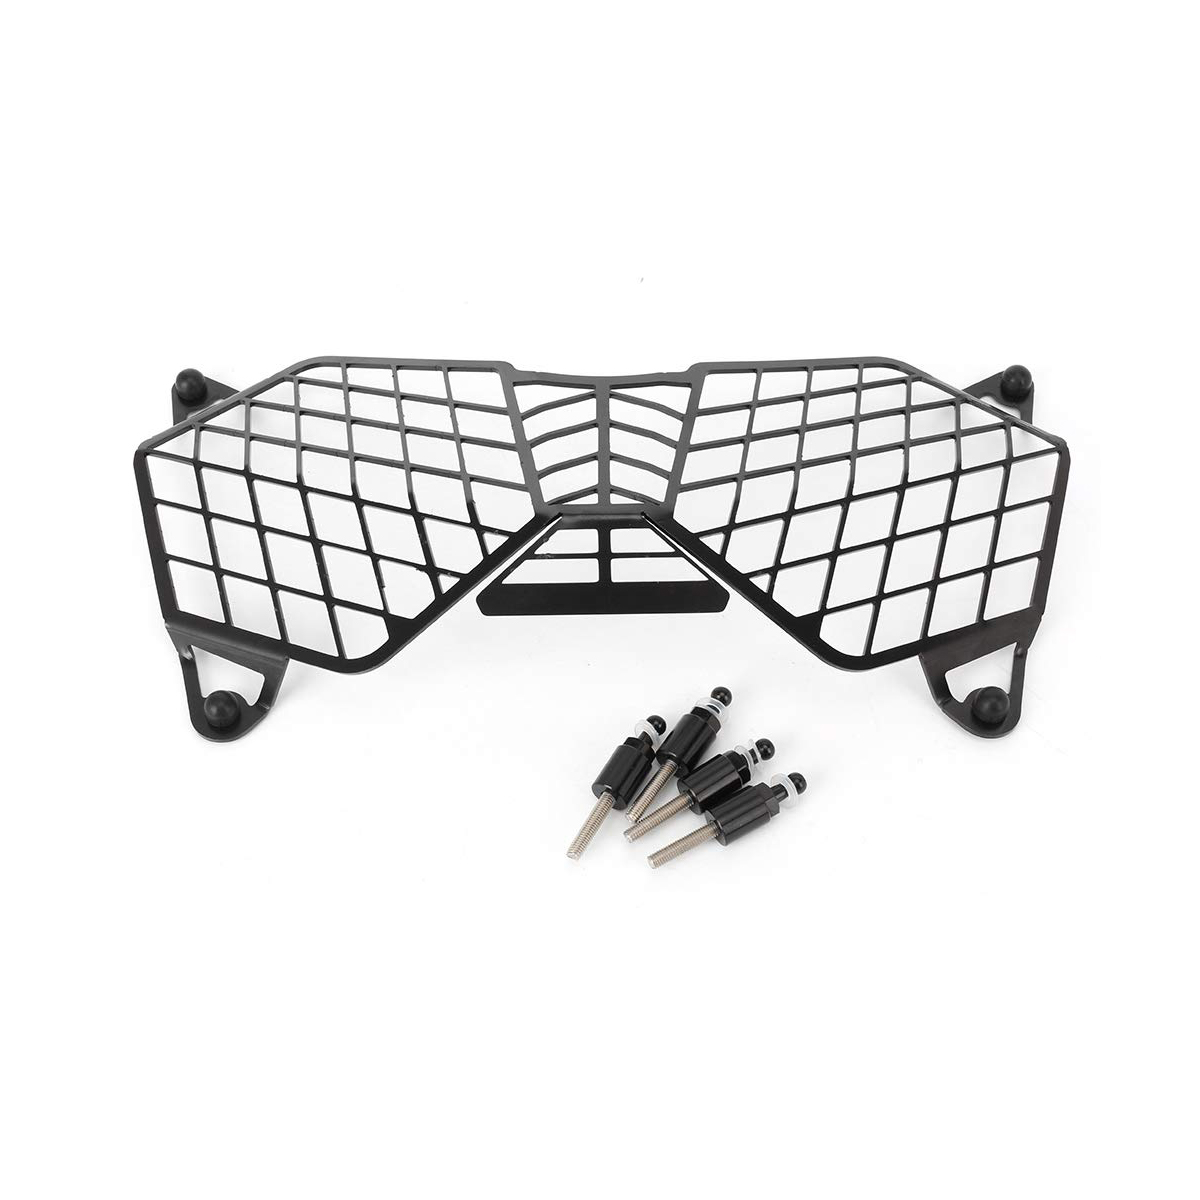 Original Black Motorcycle Headlight Grille Light Cover